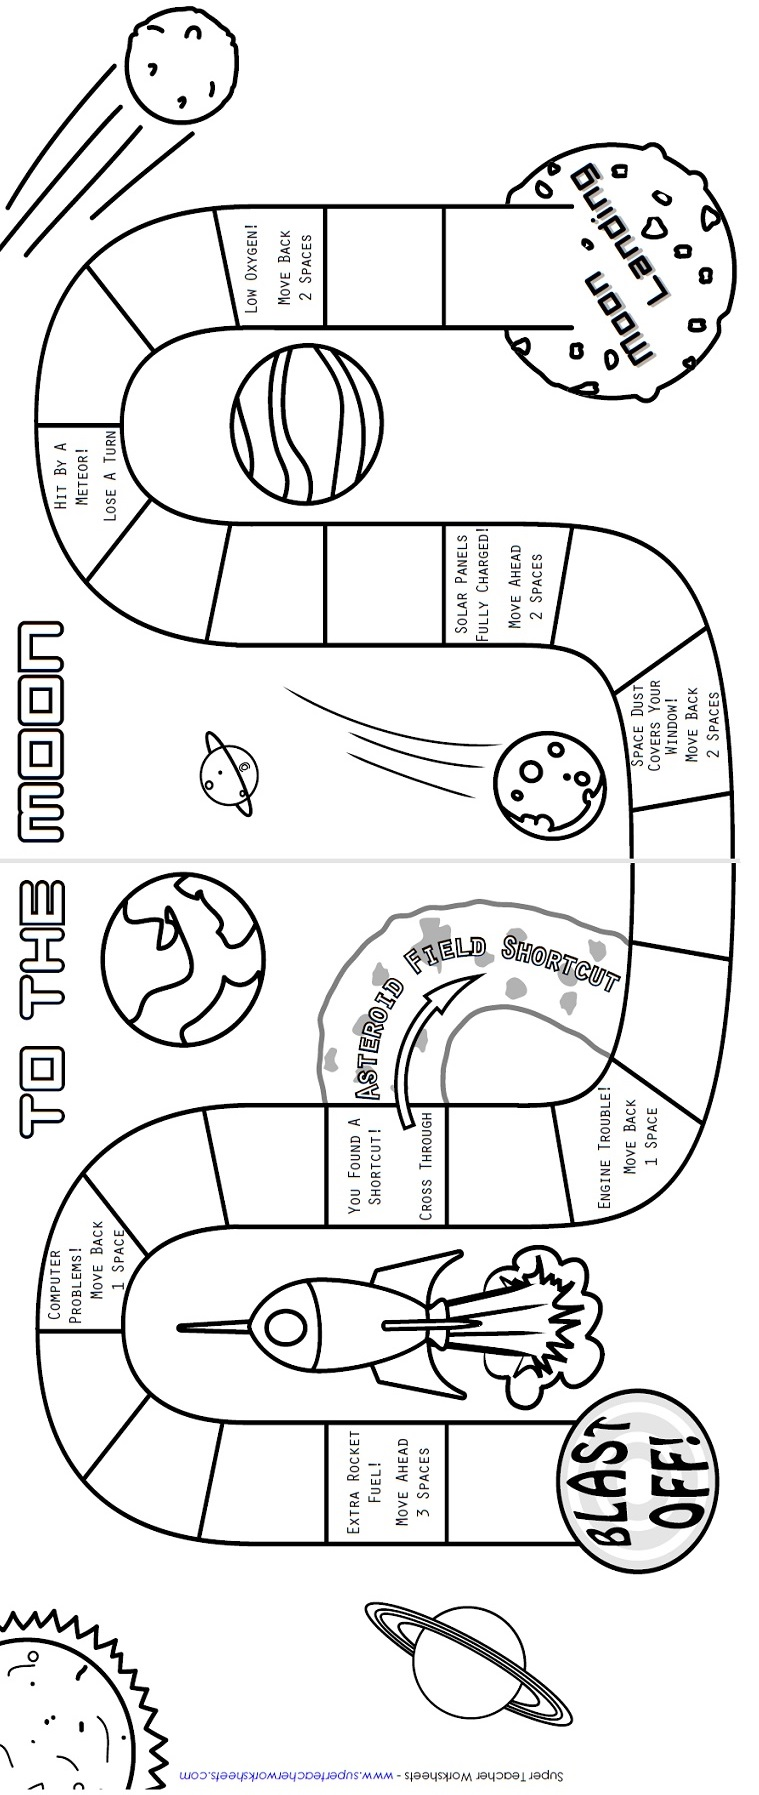 Worksheets Solar System Worksheet printable board game to the moon game